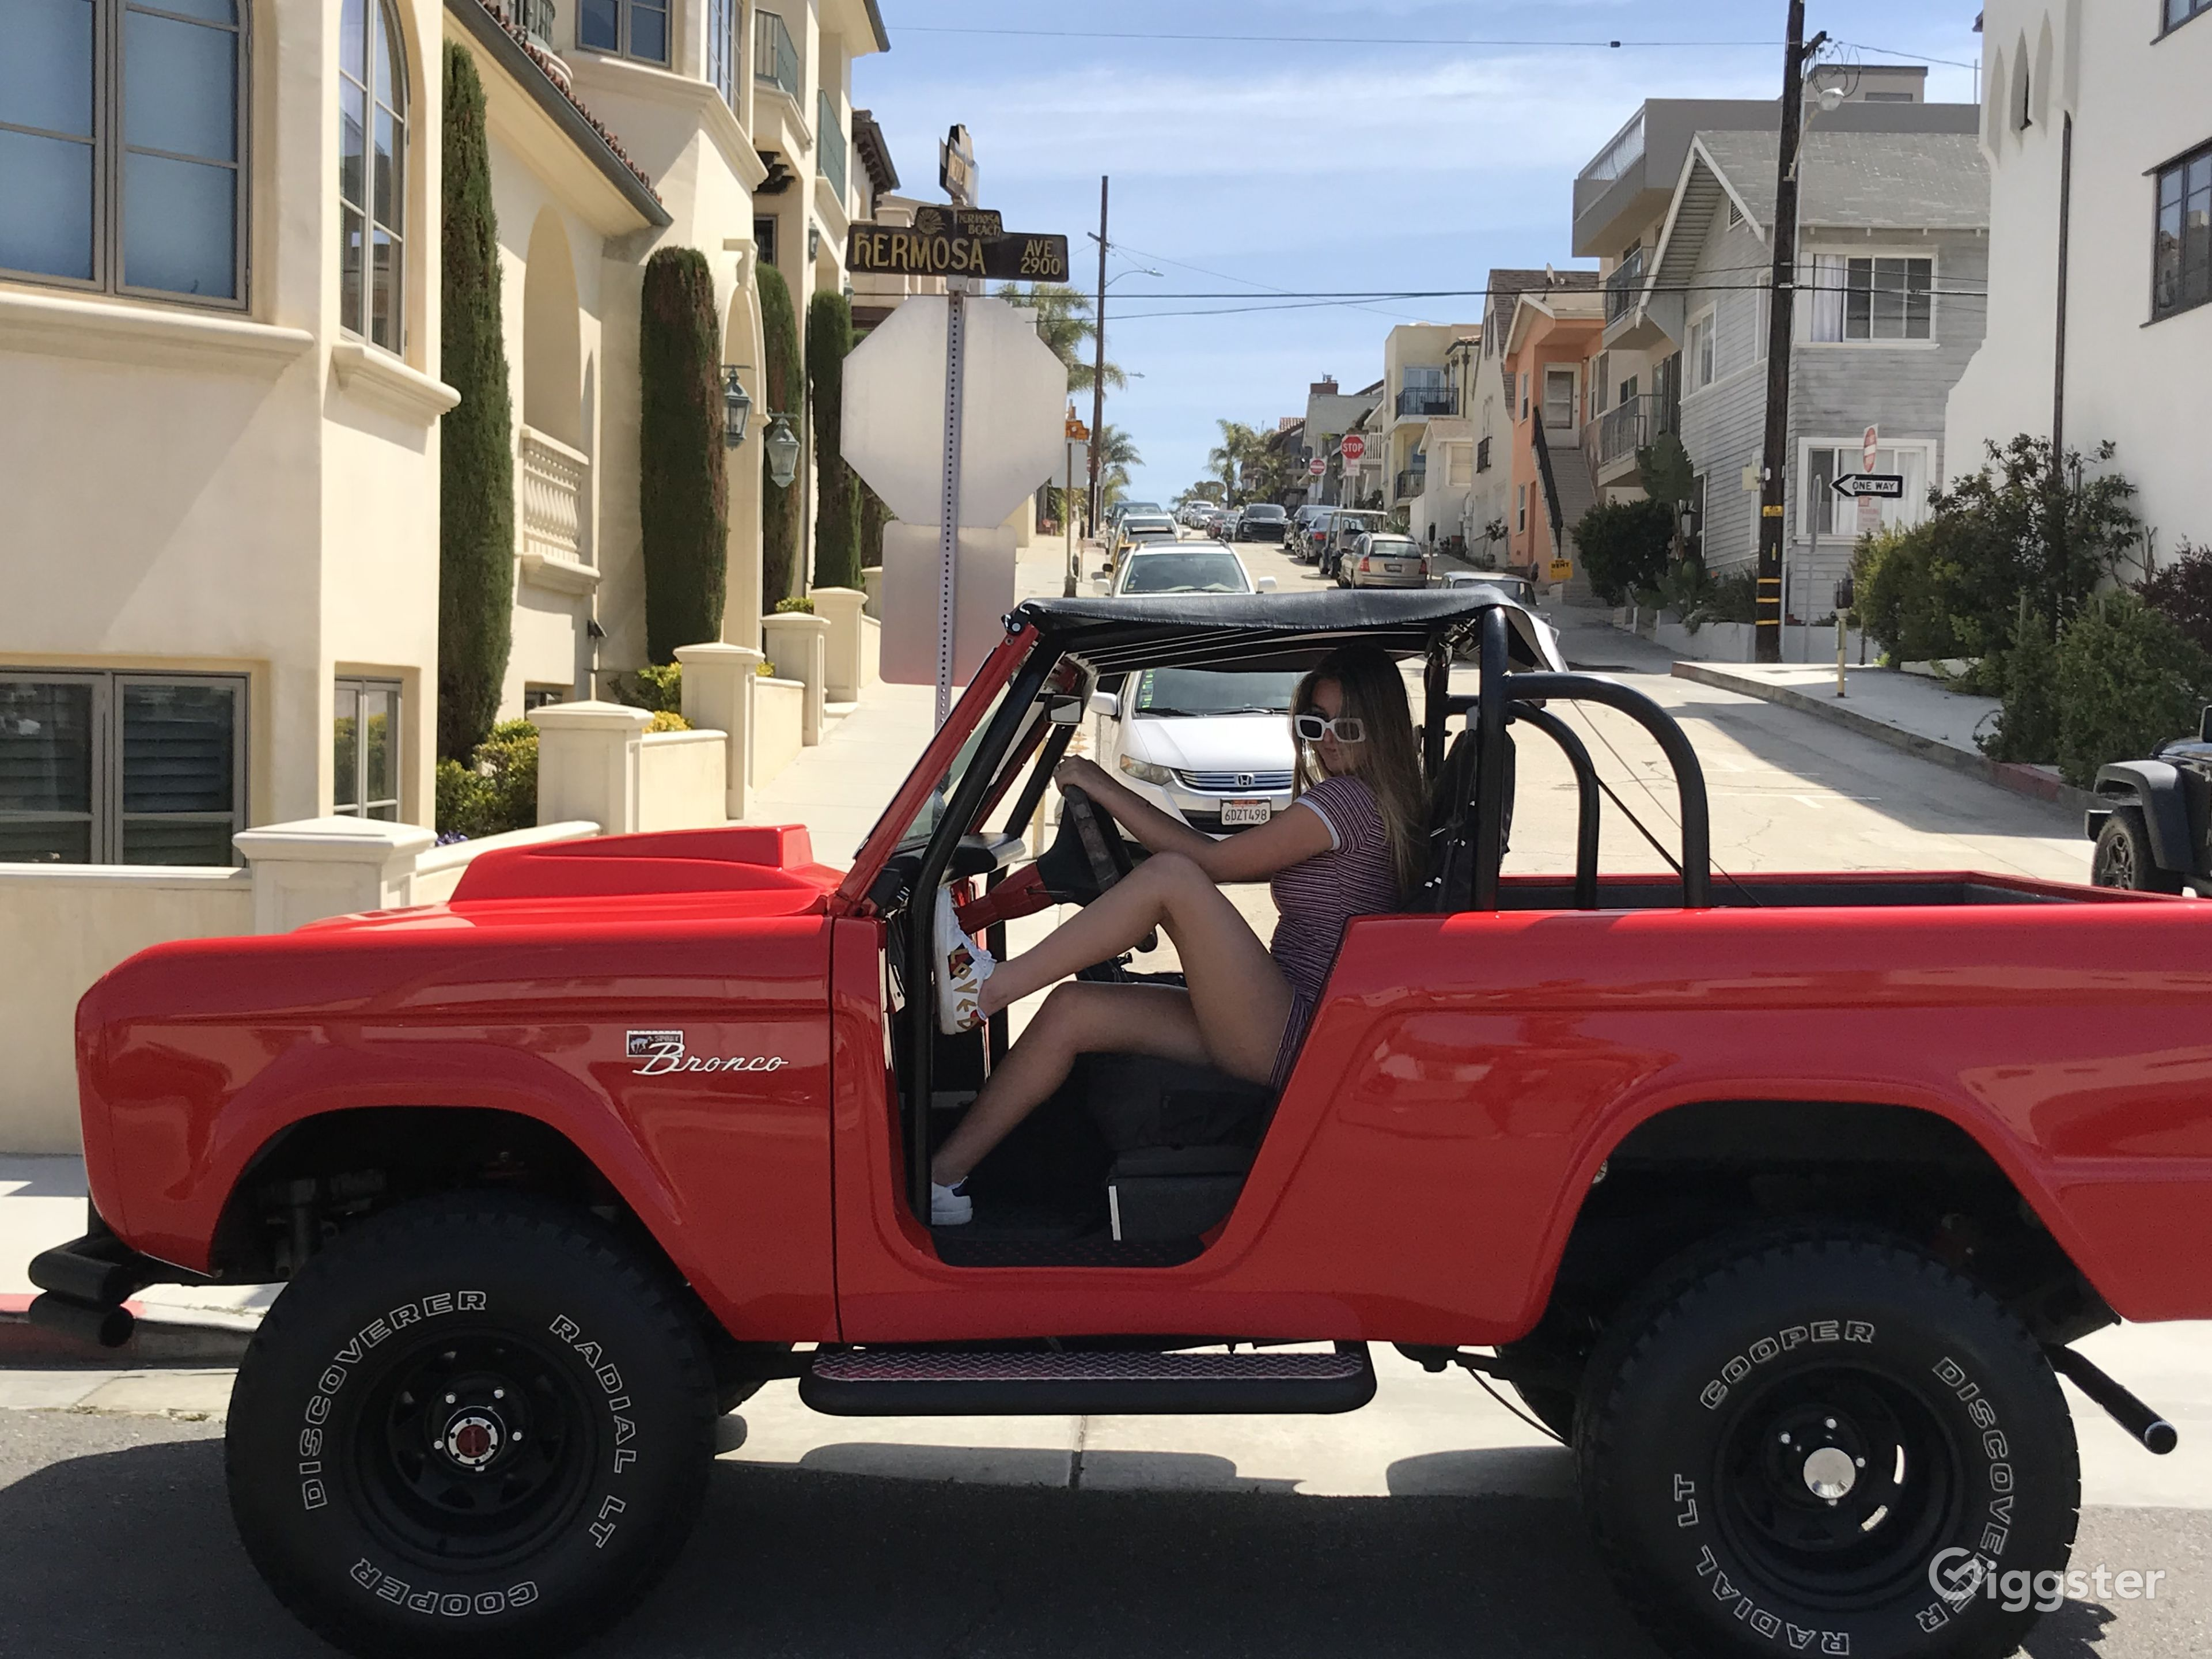 Classic 1977 Ford Bronco Rent This Location On Giggster